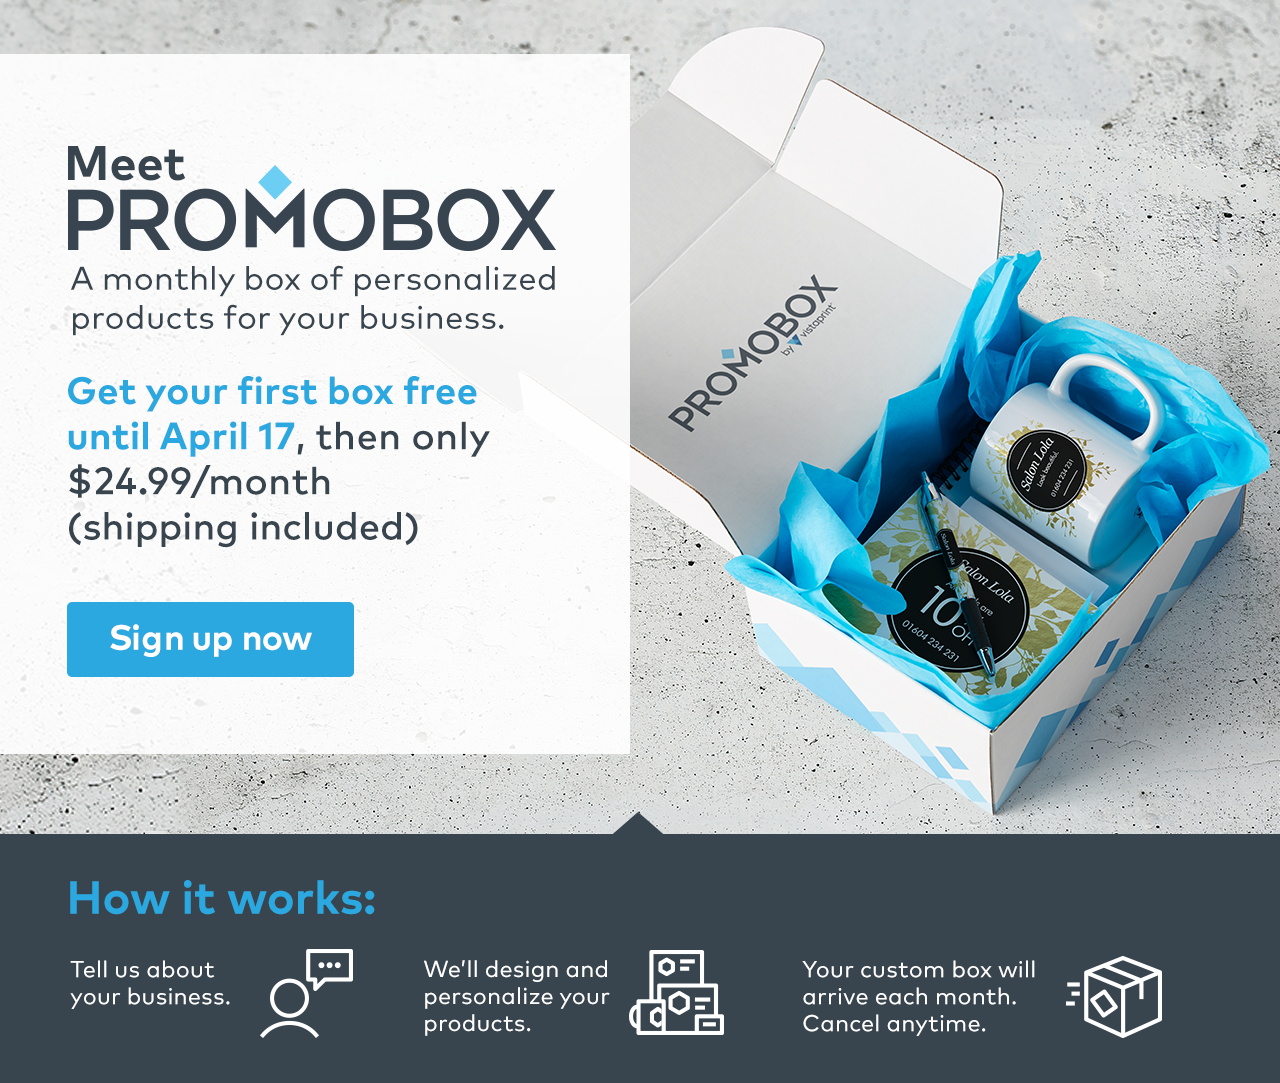 Vistaprint: Meet Promobox | Get your first box free | Milled